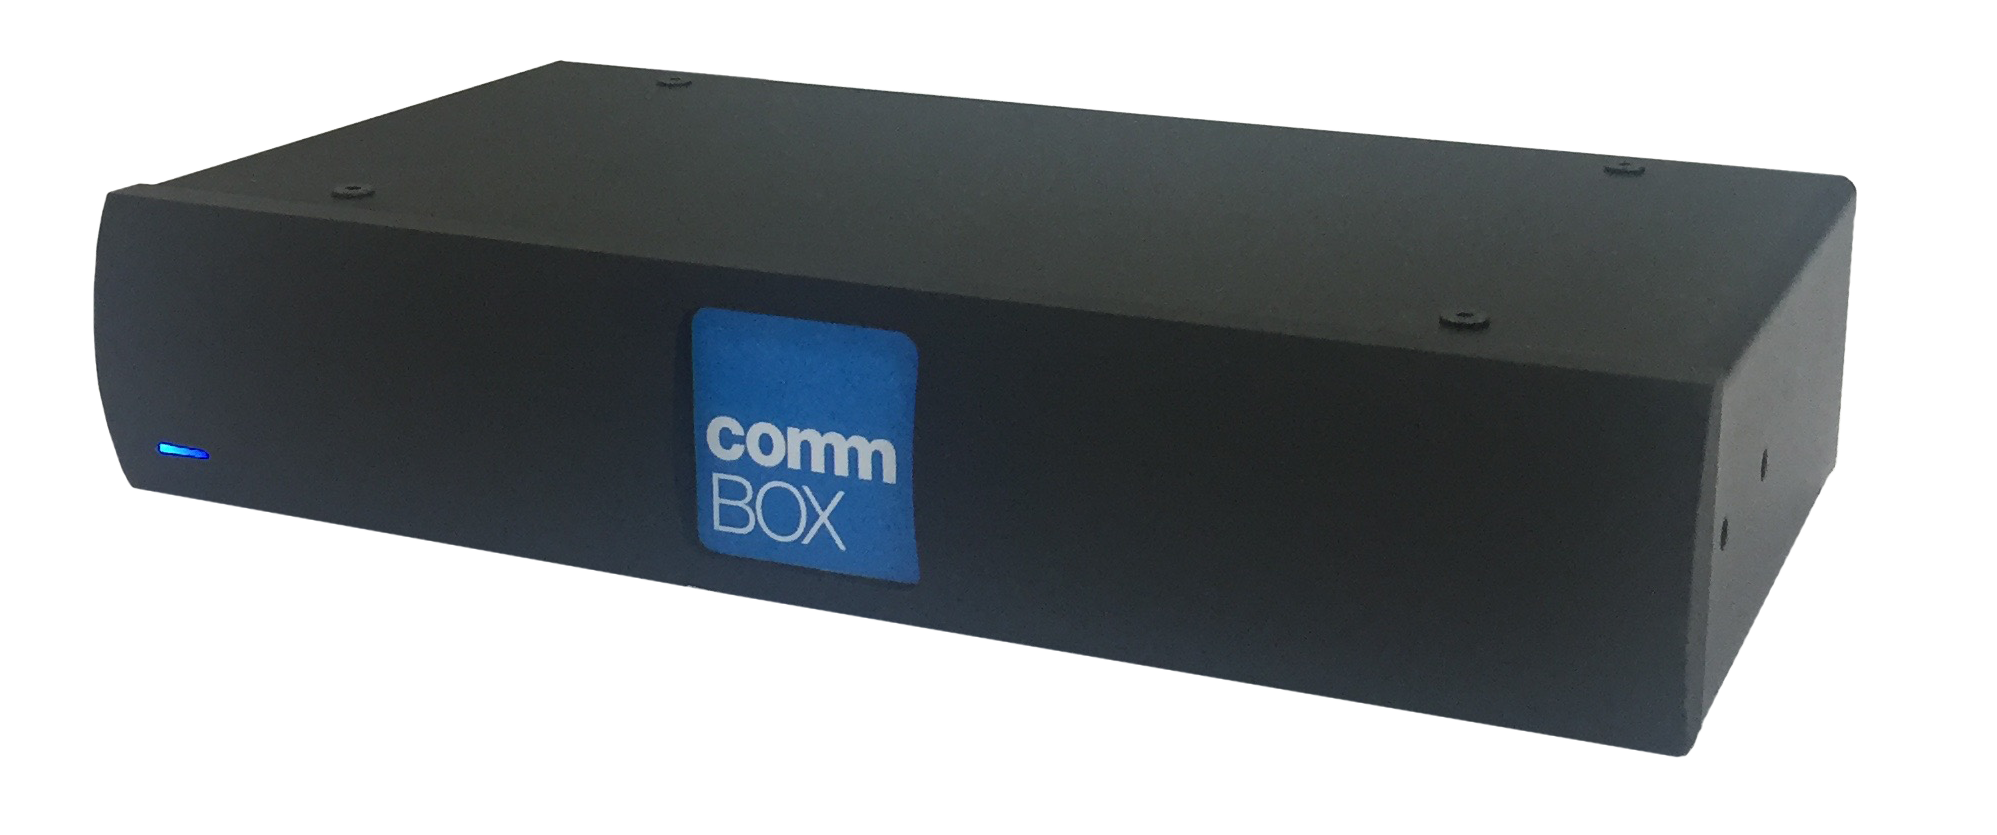 Commbox Room Control